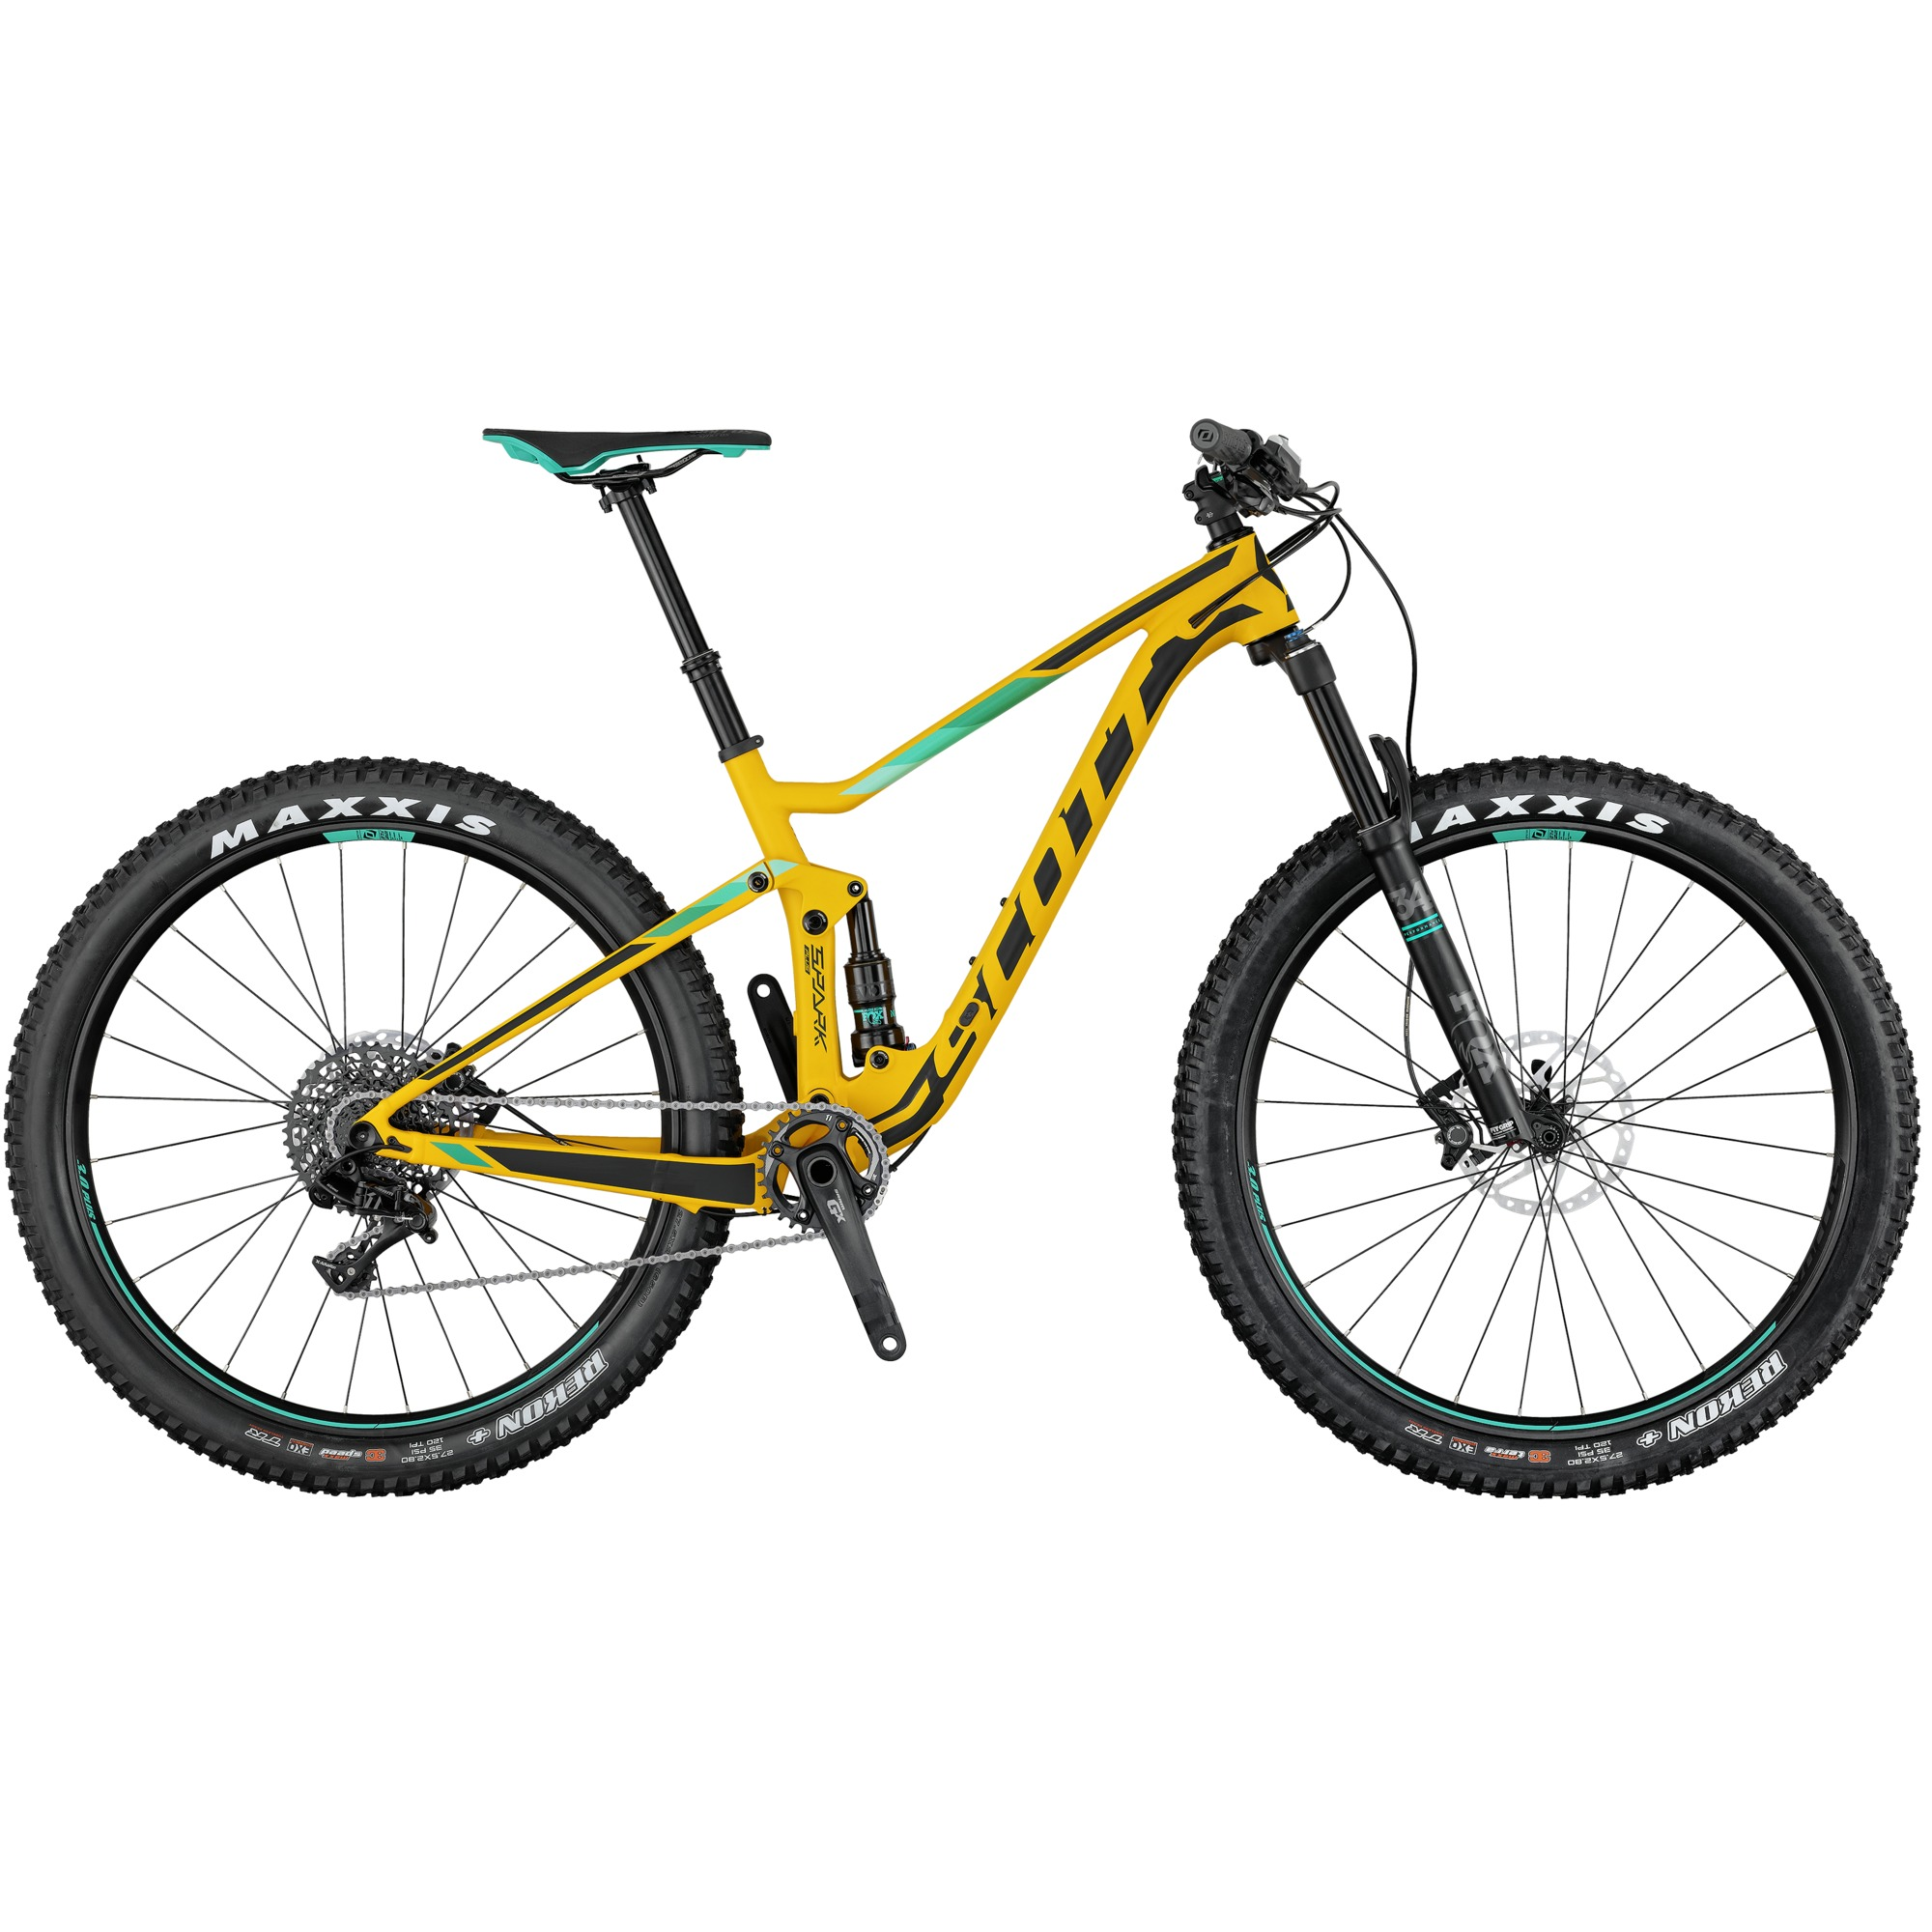 SCOTT Spark 720 Plus Bike